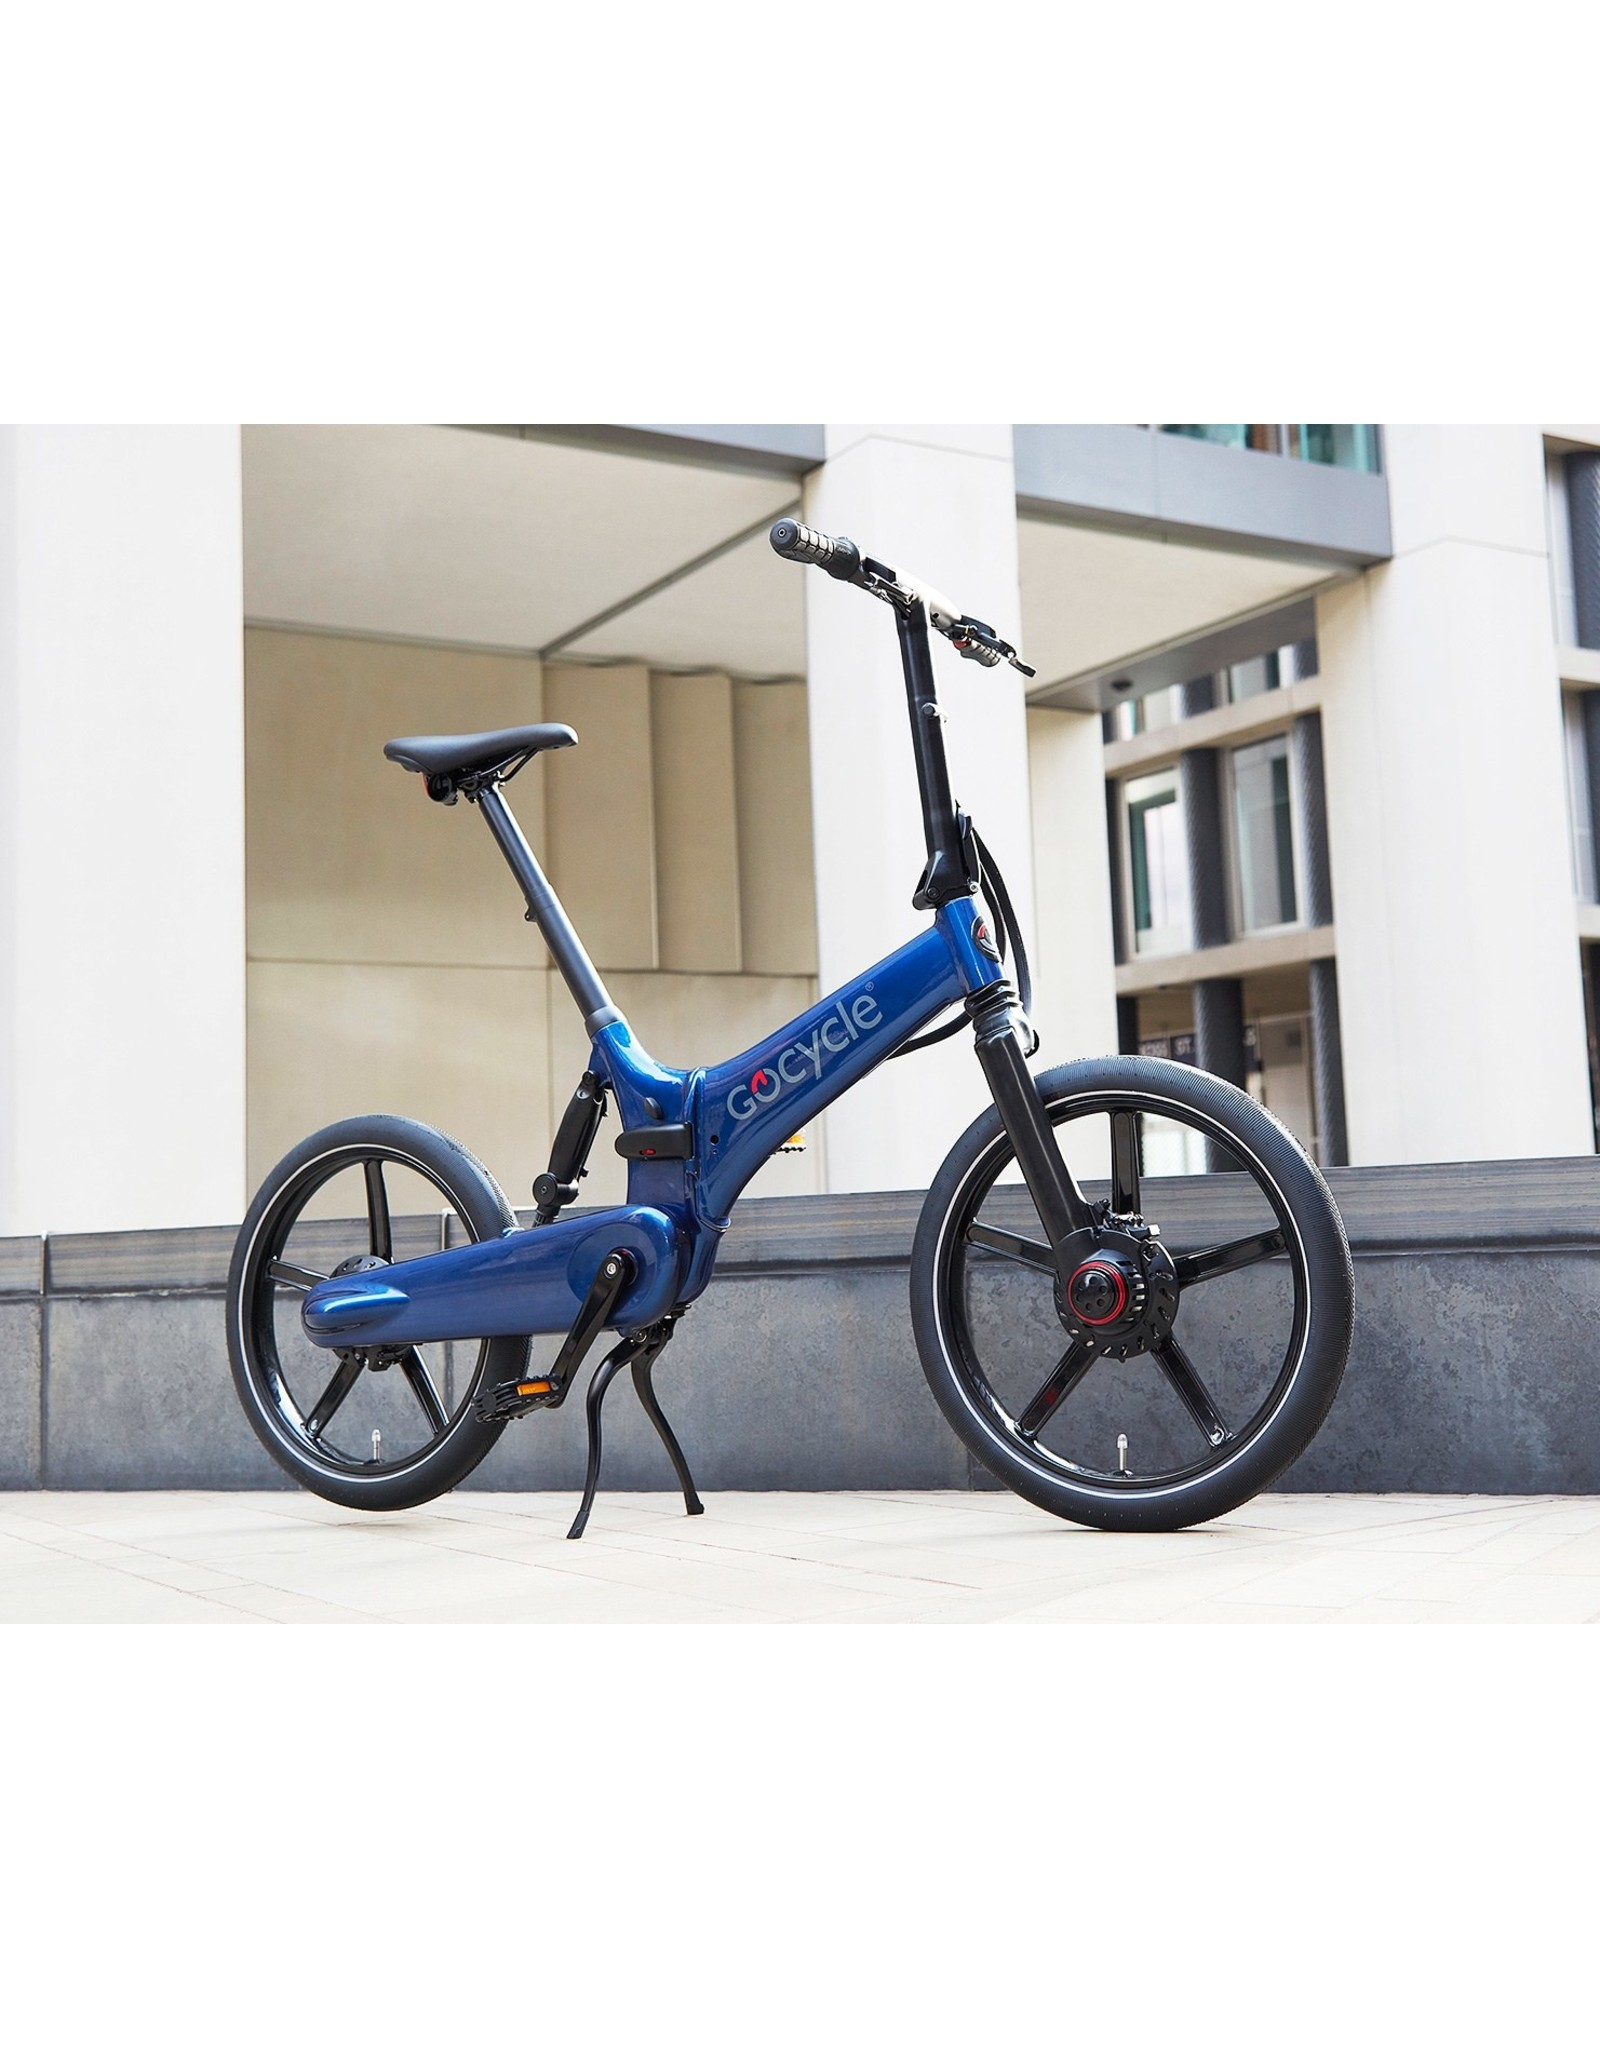 Gocycle GOCYCLE GX BLUE FOLDABLE